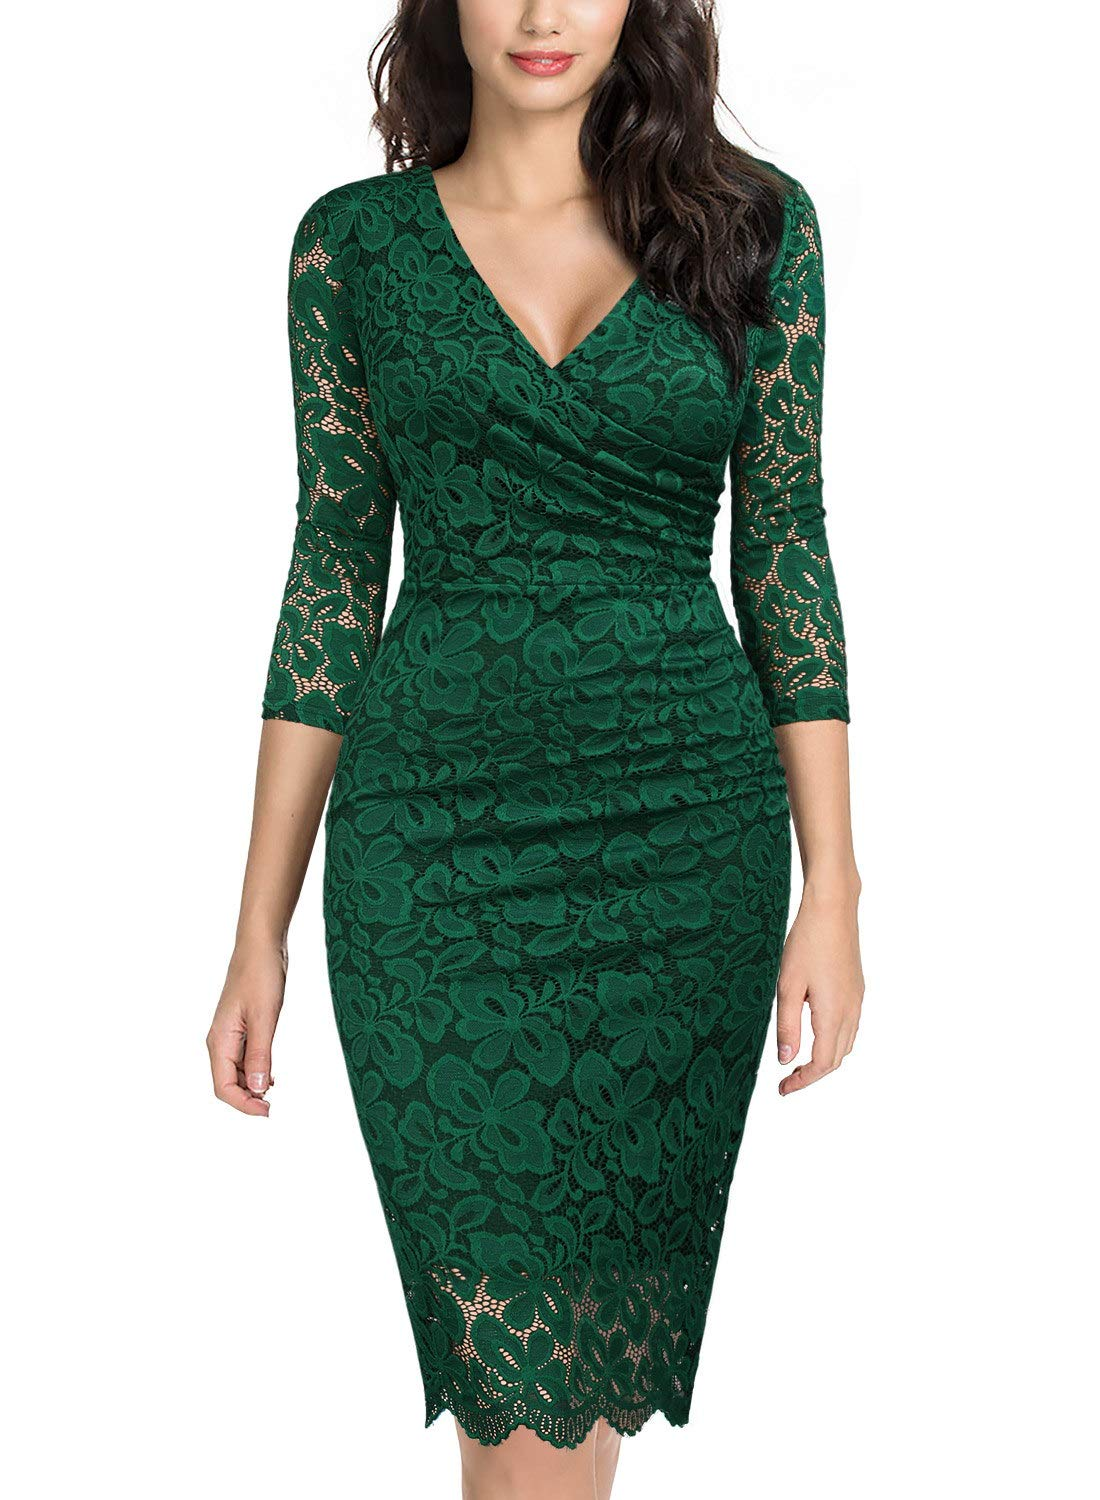 Party Dresses - Women's Retro Deep-V Neck Ruffles Floral Lace Evening Pencil Dress